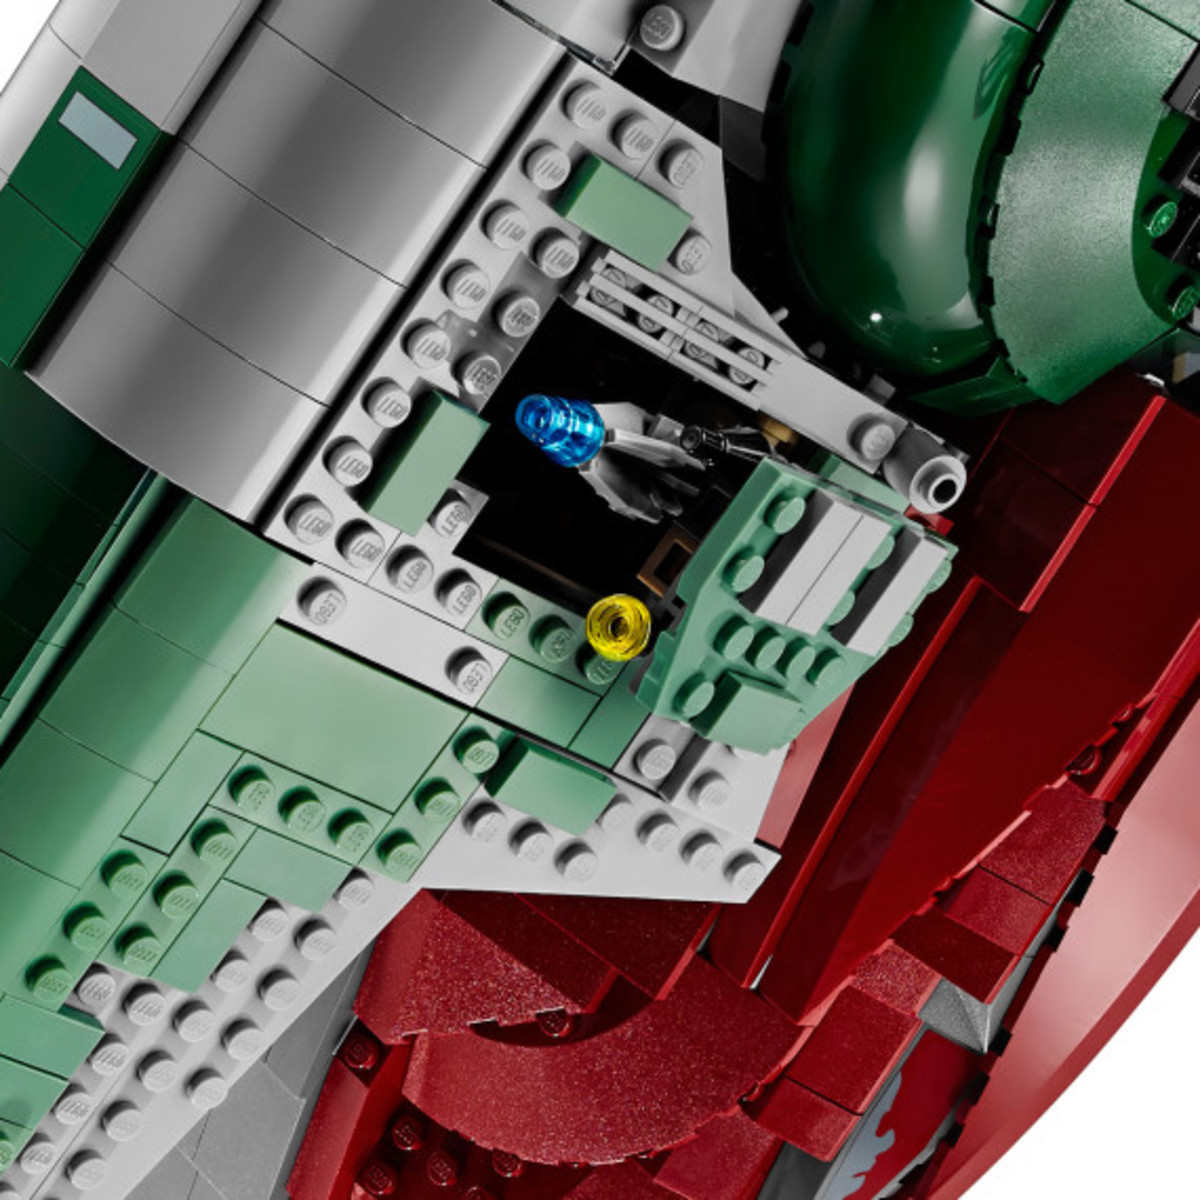 Star Wars x LEGO Ultimate Collector's Series: Boba Fett's Slave I Kit | Release Info - 25